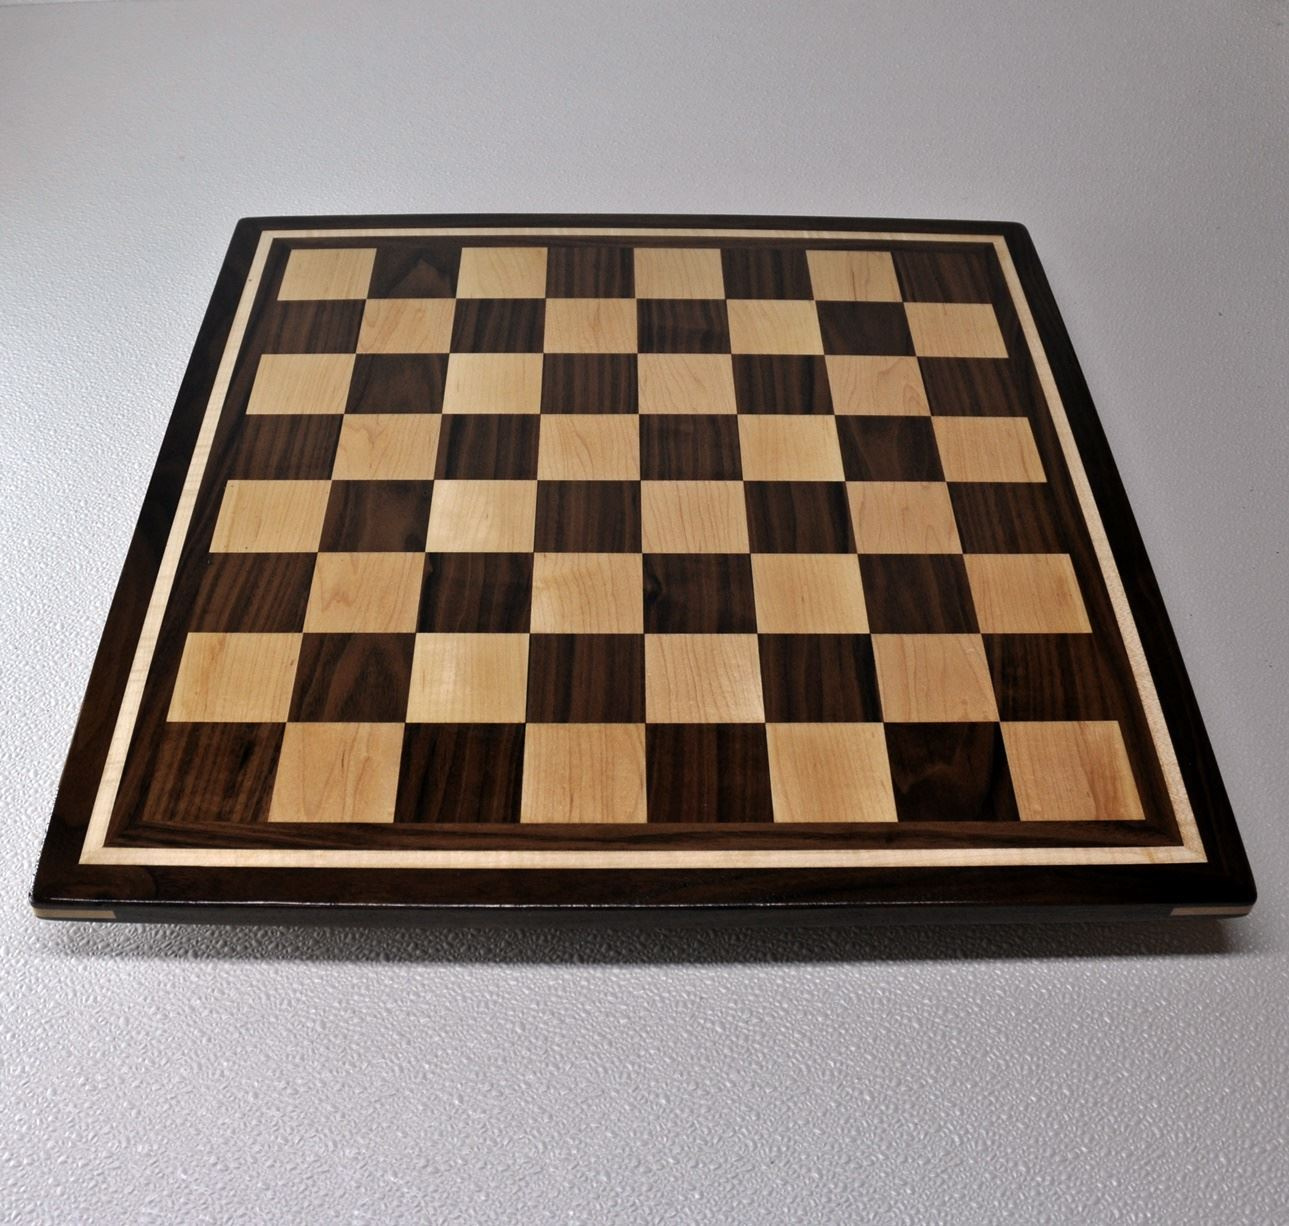 Walnut and Maple Chess Board with Curly Maple inlay frame image 4